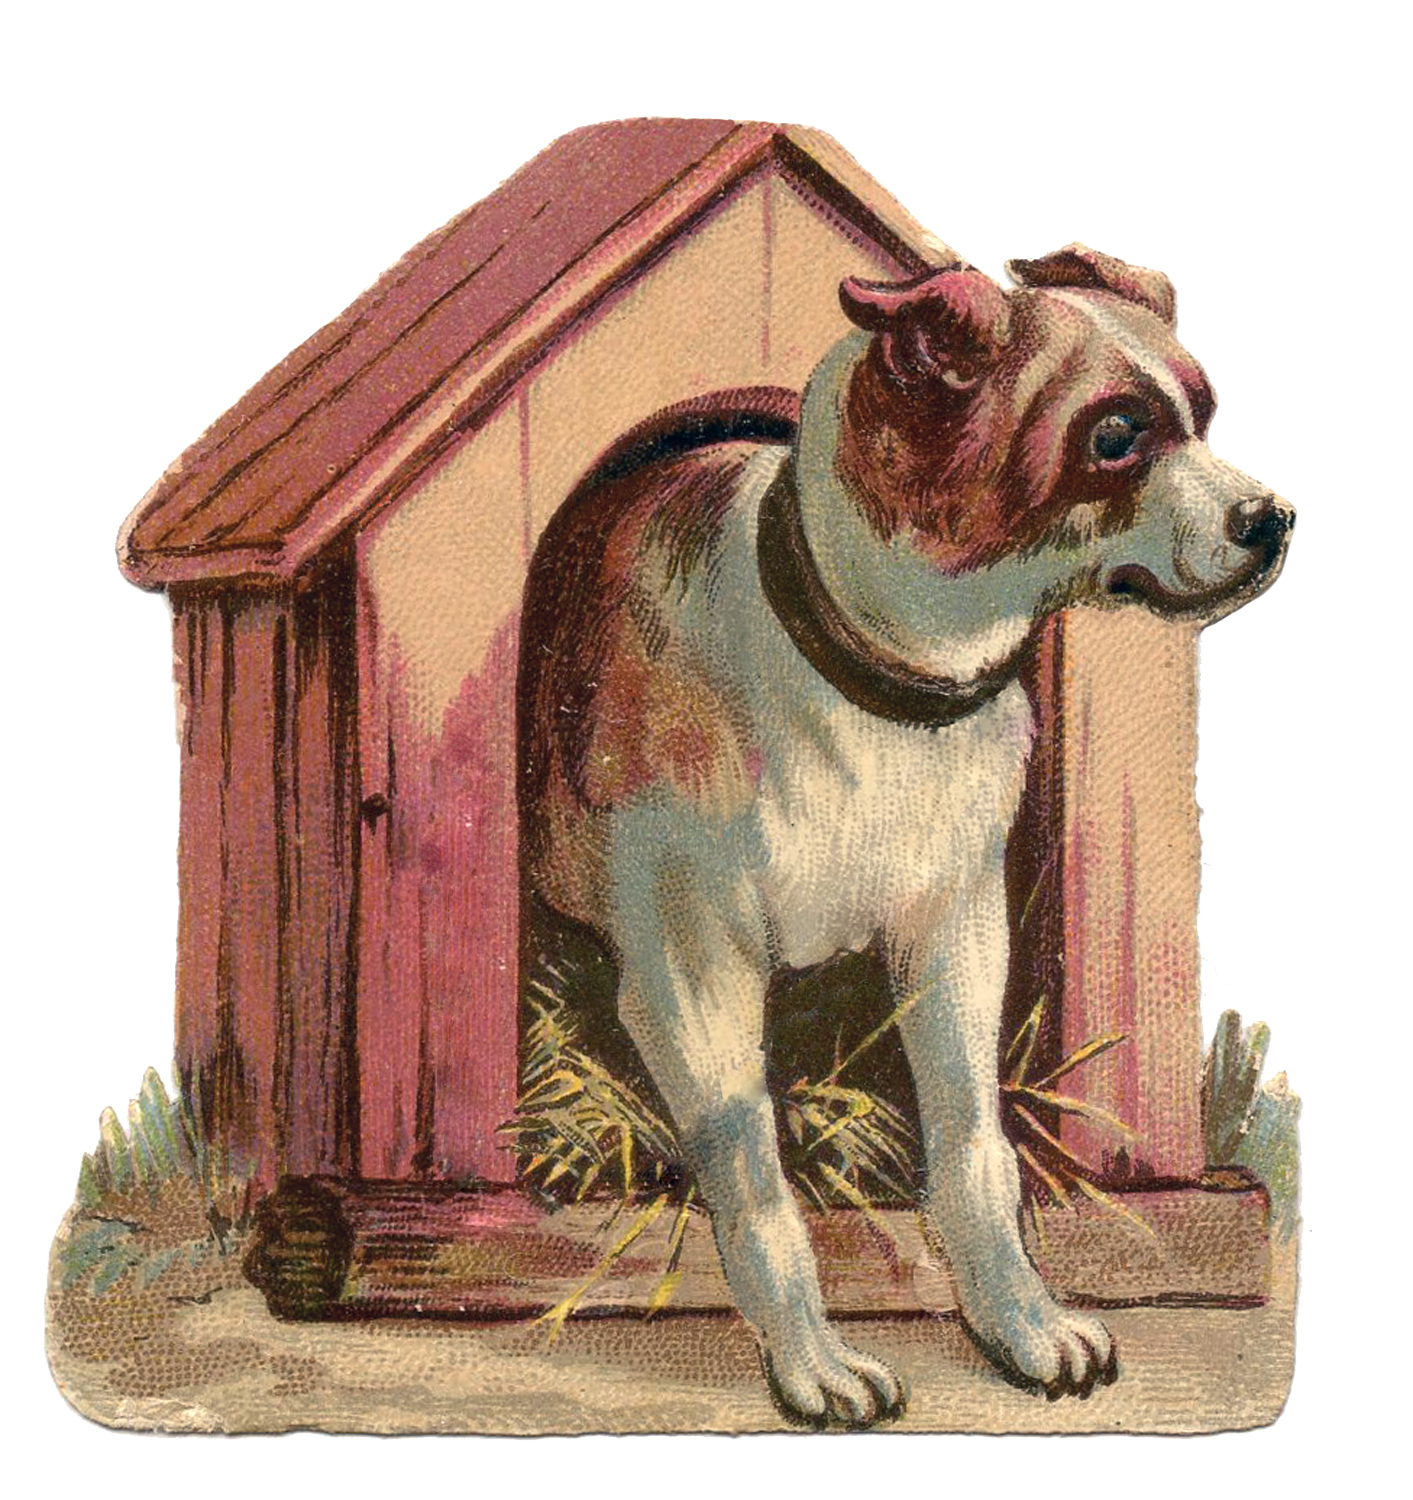 http://thegraphicsfairy.com/wp-content/uploads/blogger/-QUFASuuWXCo/UaE_TEv4m1I/AAAAAAAAjKQ/pDgw3bDaIdc/s1600/Dog-House-Vintage-GraphicsFairy2.jpg